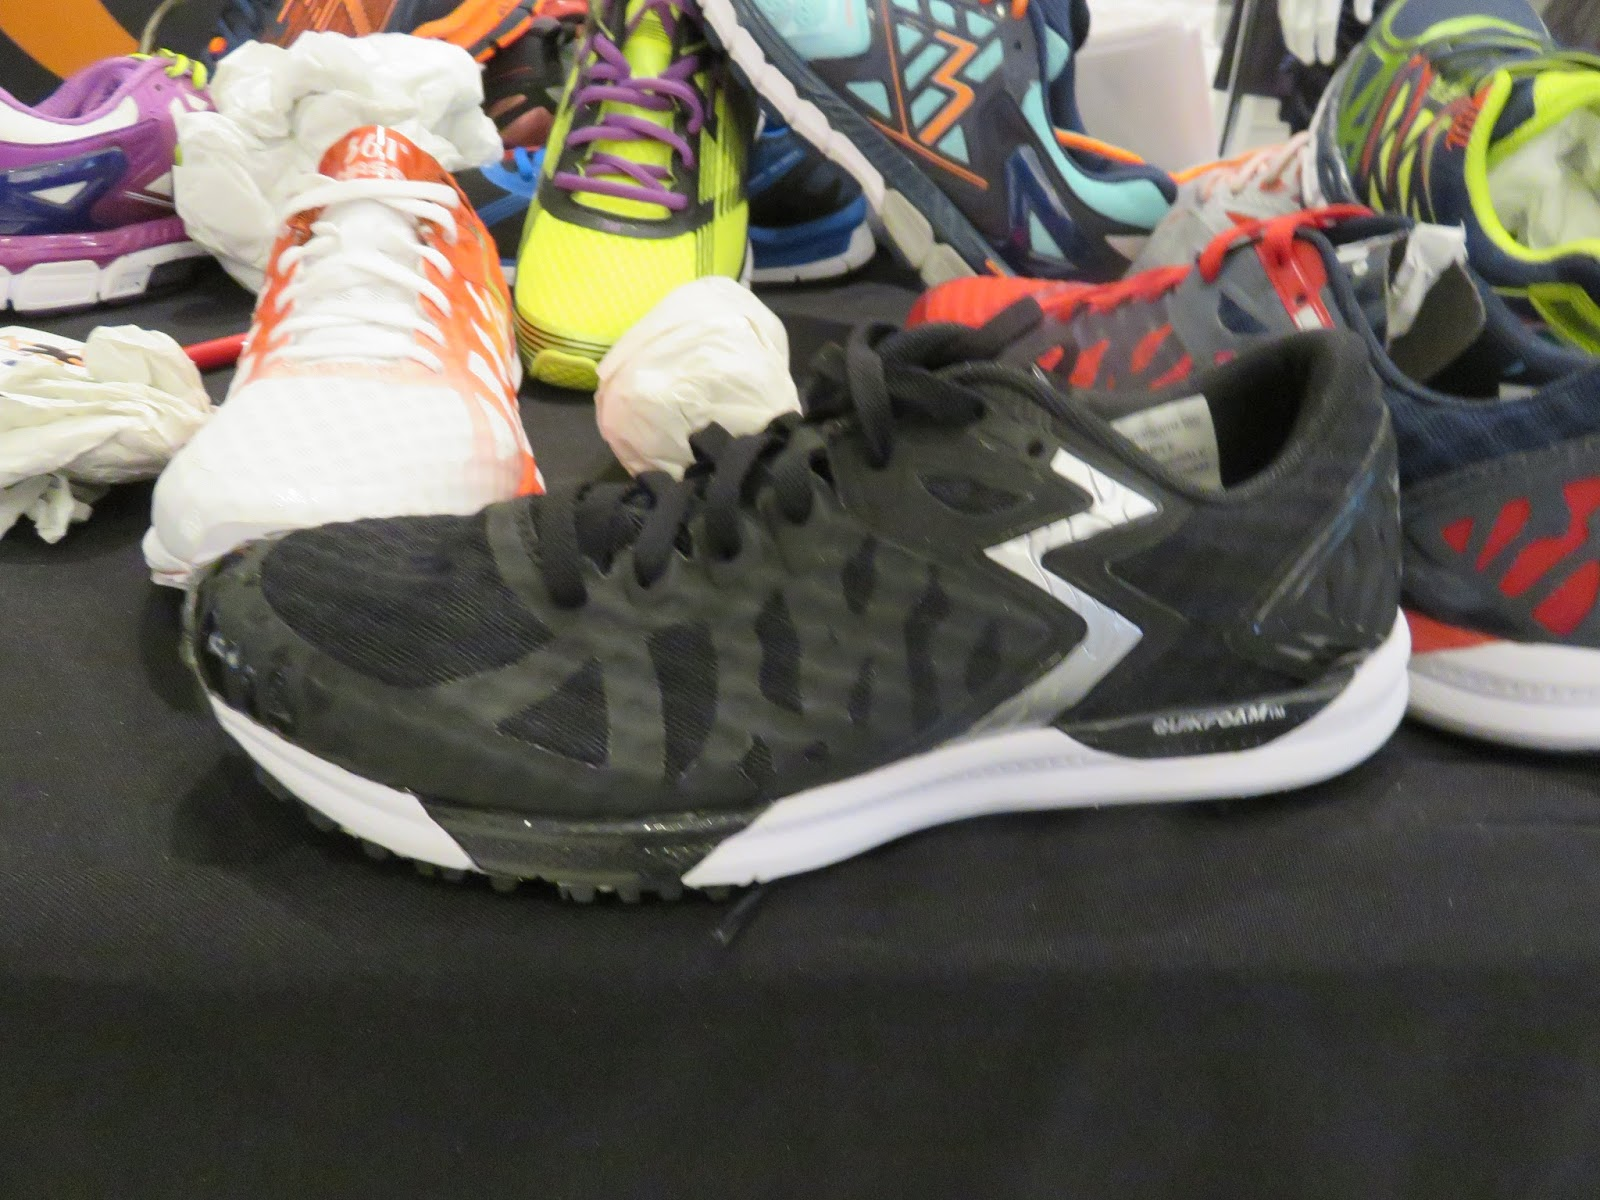 Keeping The Old You-New Spring 16 Fitness Shoes+Gear 4f5b9da48c4